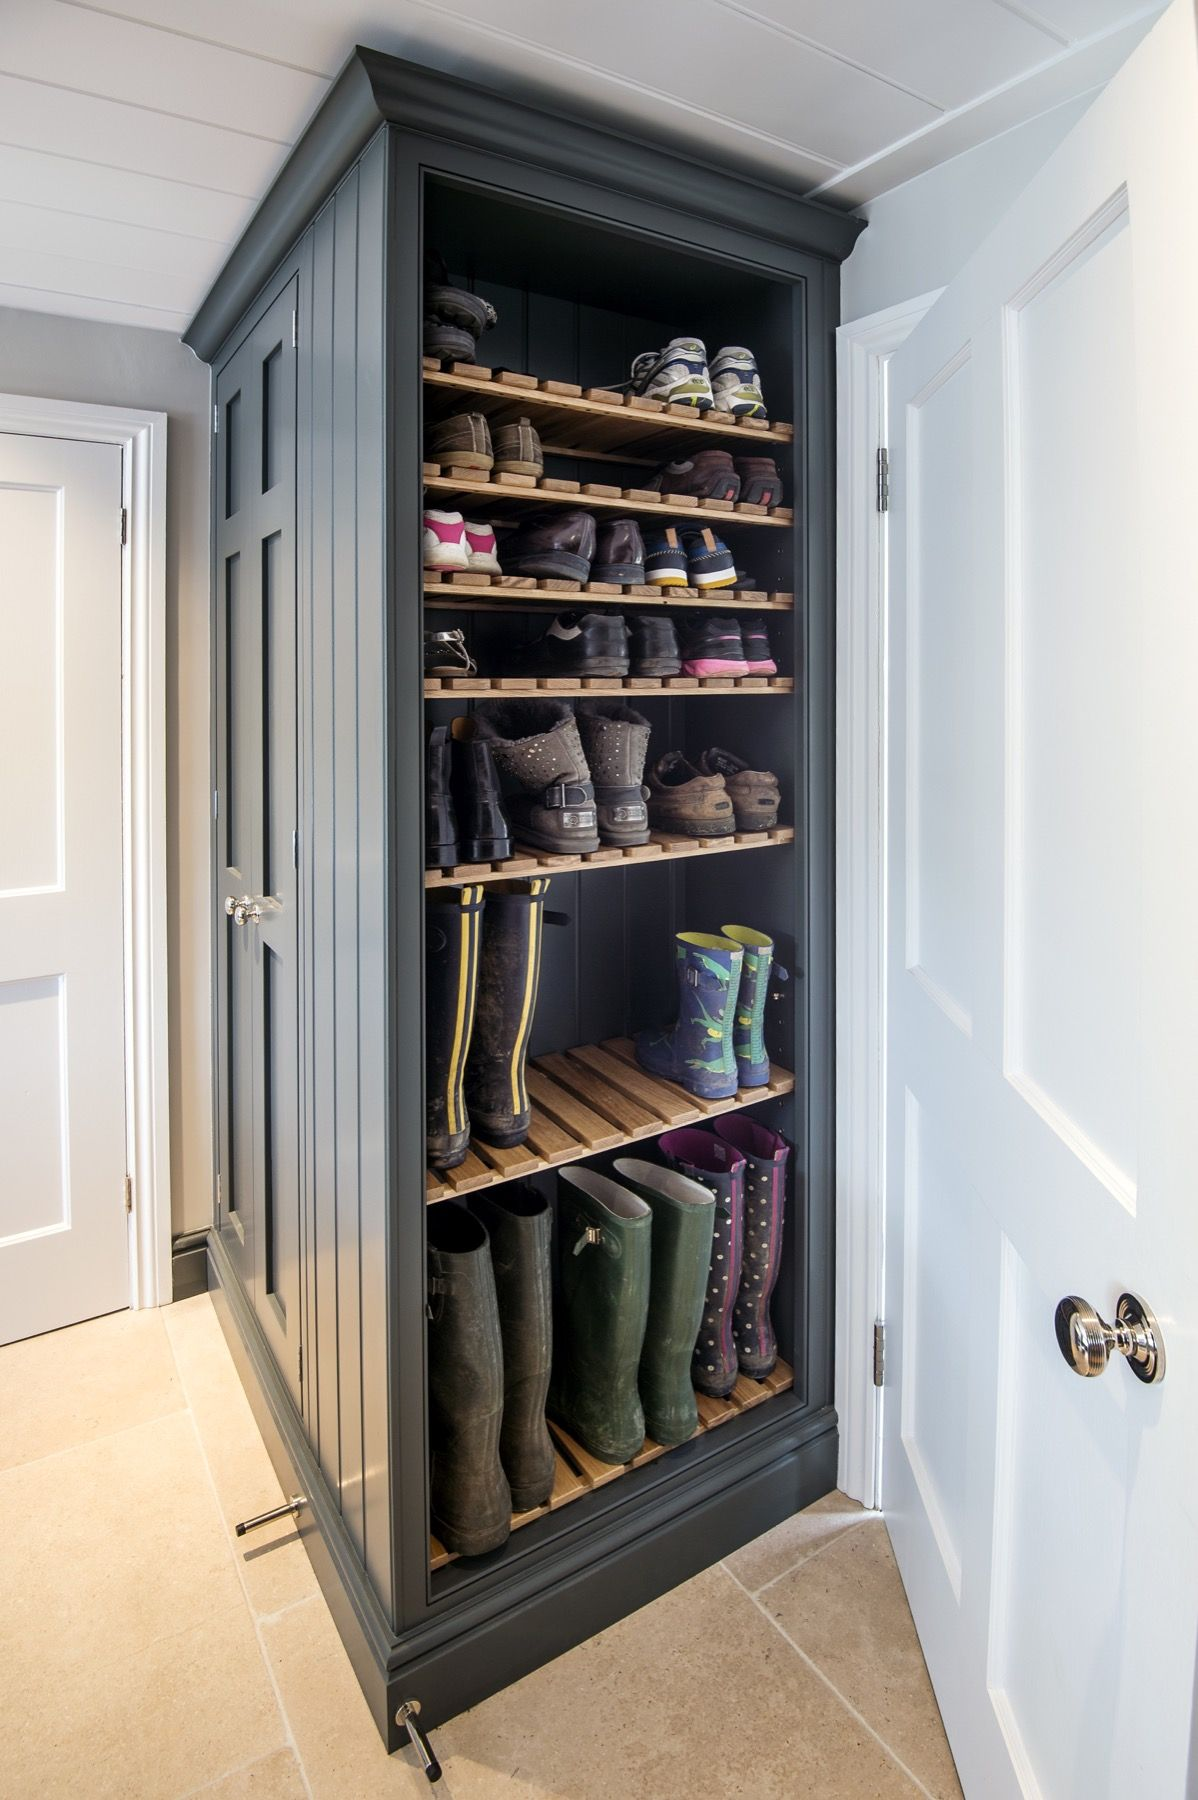 Hatchgate-Farmhouse-27.jpg 1,198×1,800 pixels | House Mudroom ...